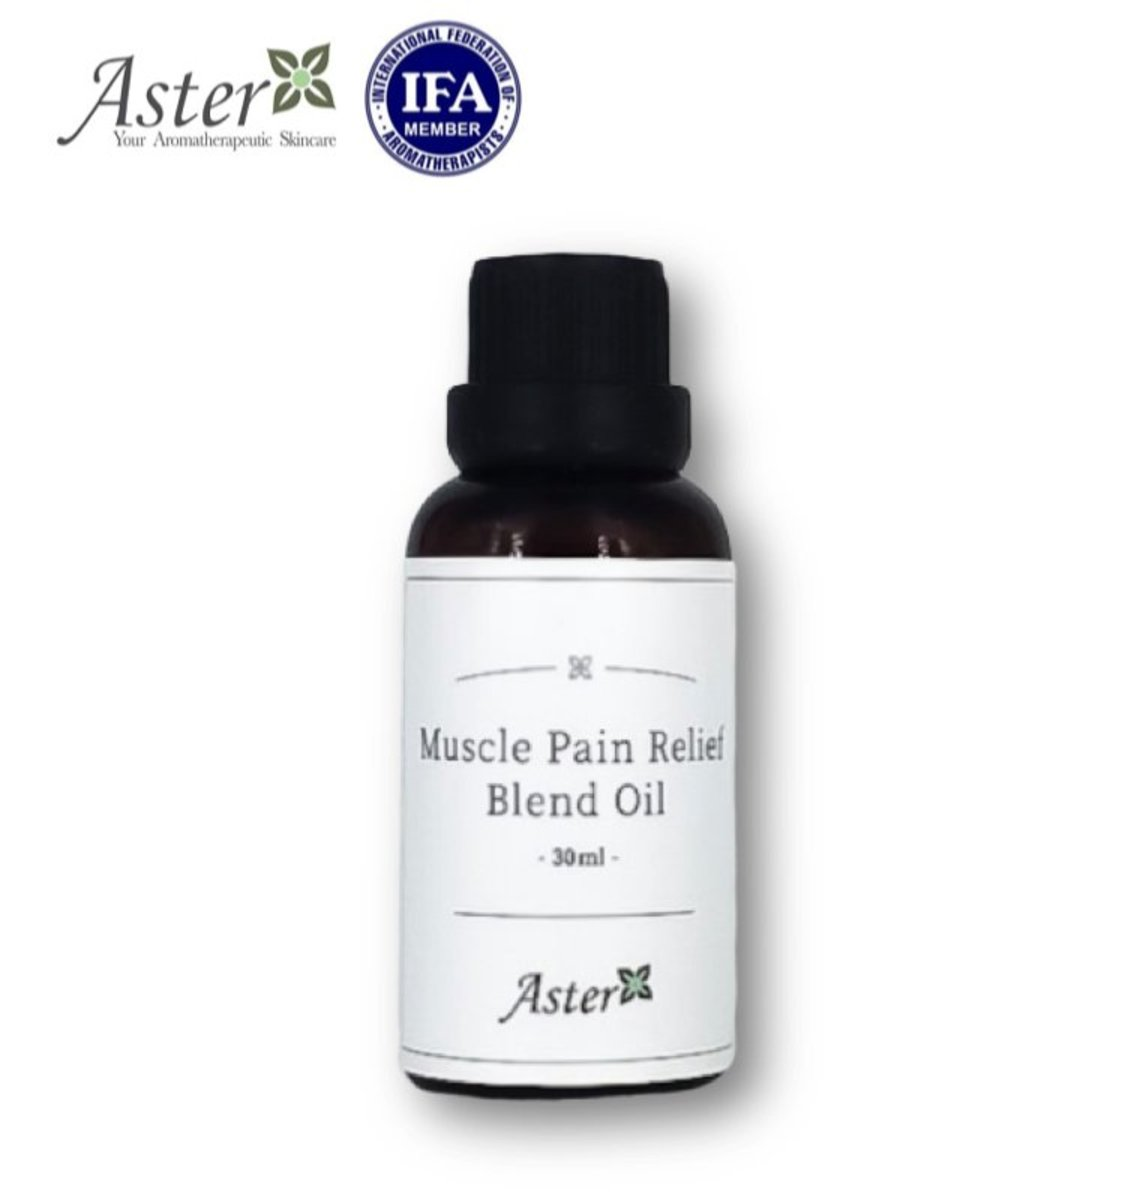 Muscle Pain Relief Blend Oil - 30ml